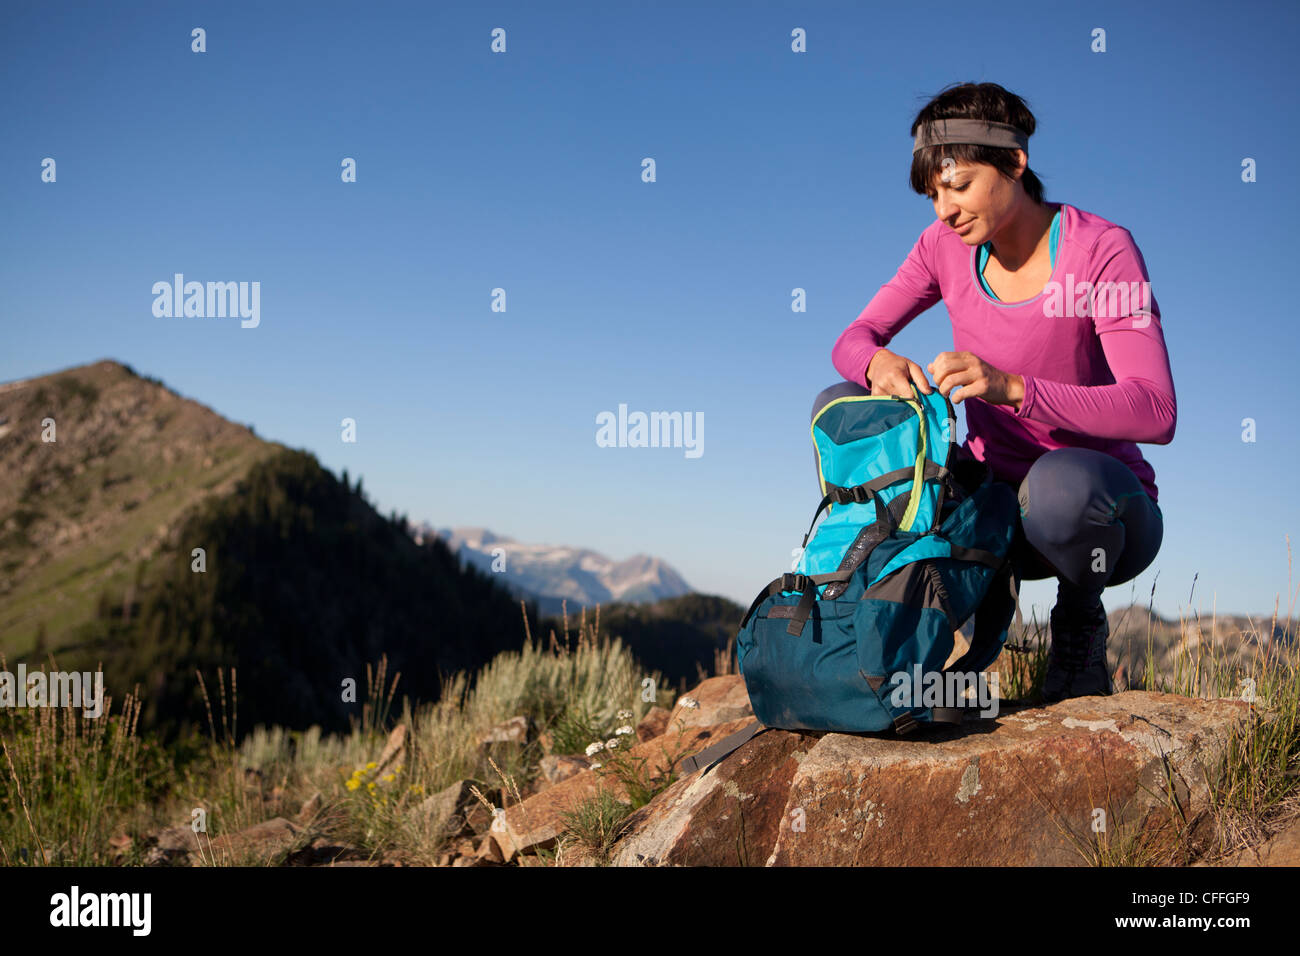 A woman pausing for a snack break on the Wasatch Crest Trail. - Stock Image